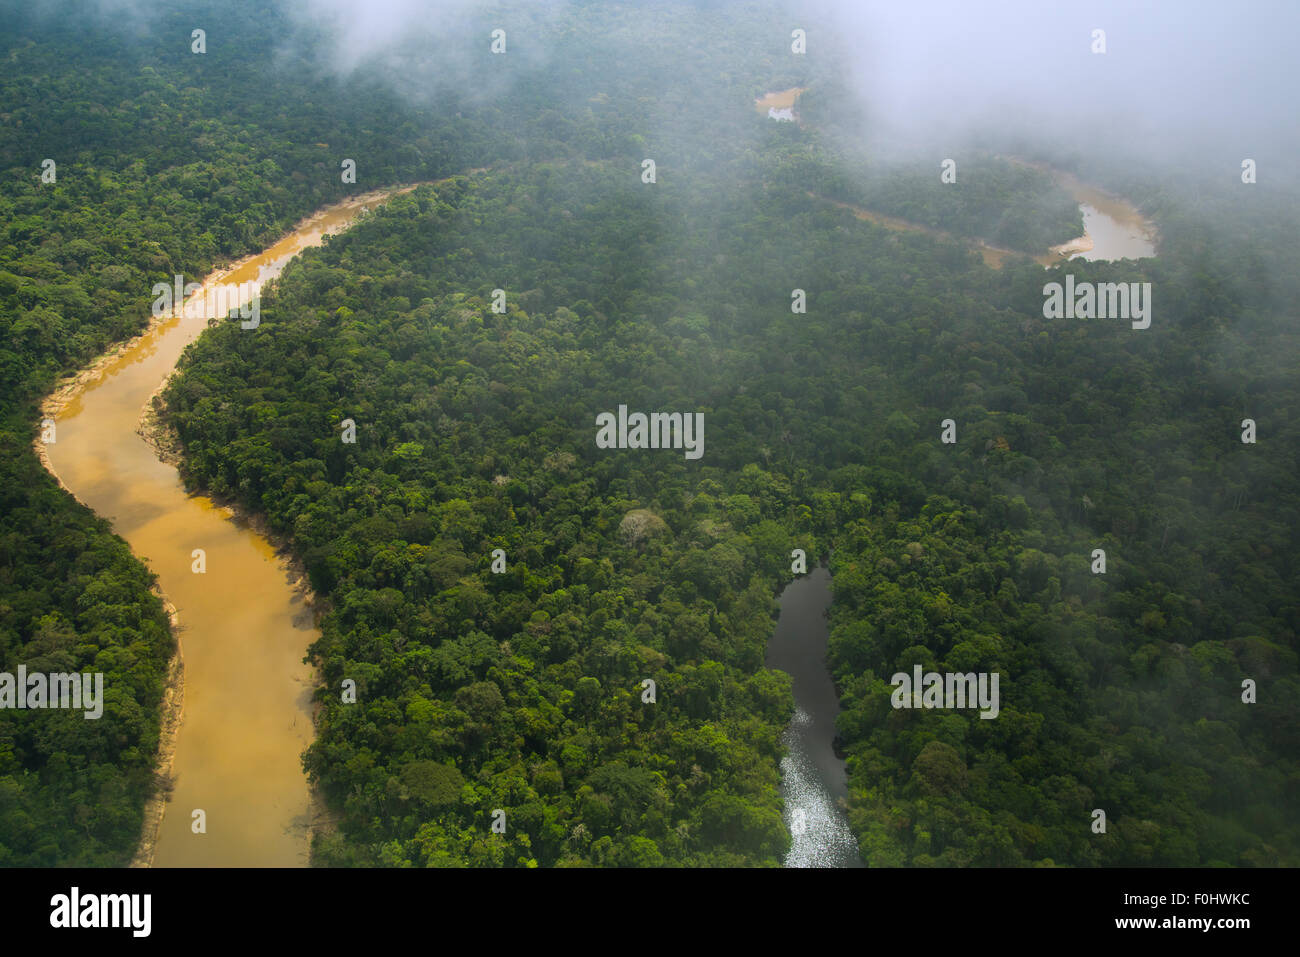 Rainforest aerial. Primary forest, Yavari Miri River and oxbow lake, between Iquitos, Peru and Brazilian border - Stock Image